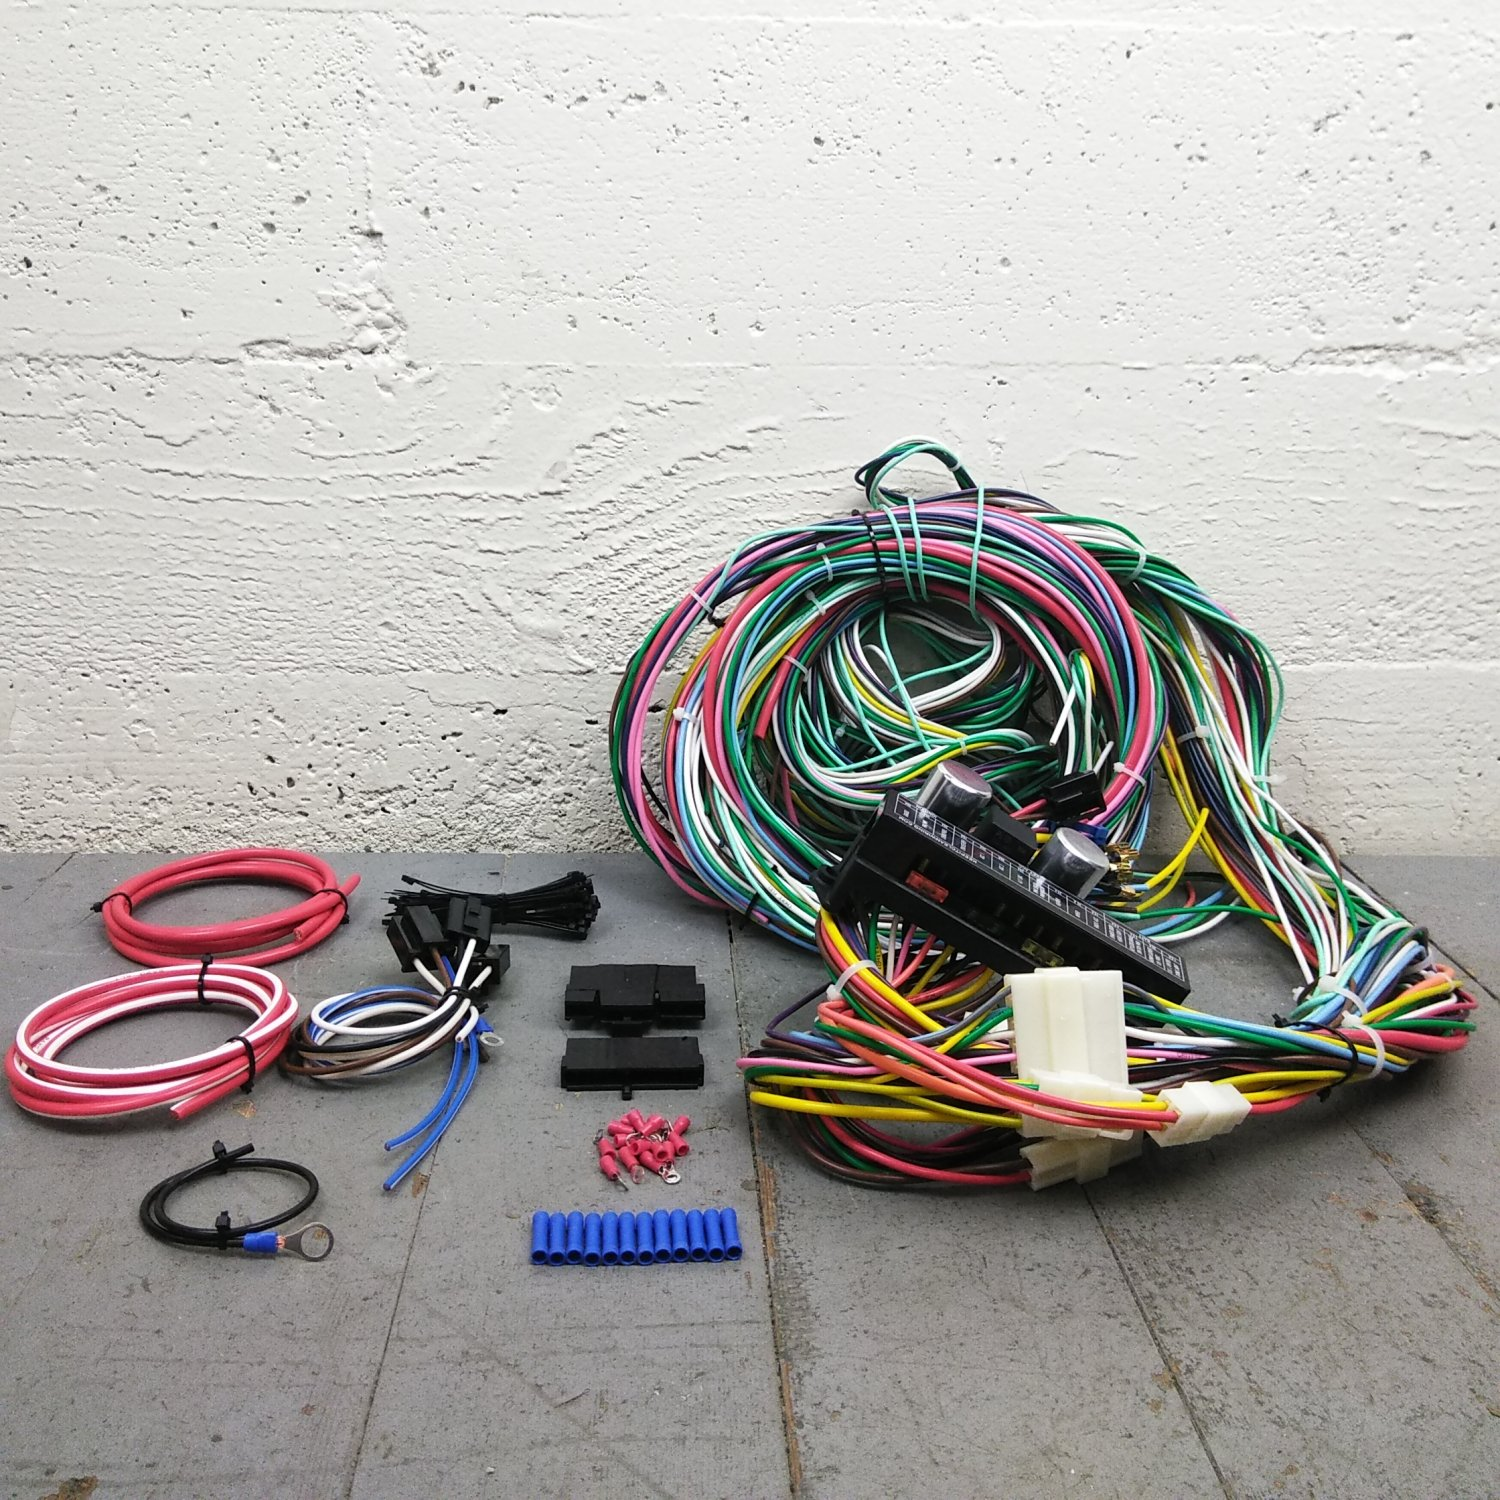 details about 1964 1967 pontiac gto wire harness upgrade kit fits painless fuse fuse block 1969 pontiac gto wiring diagram 1964 1967 pontiac gto complete wiring